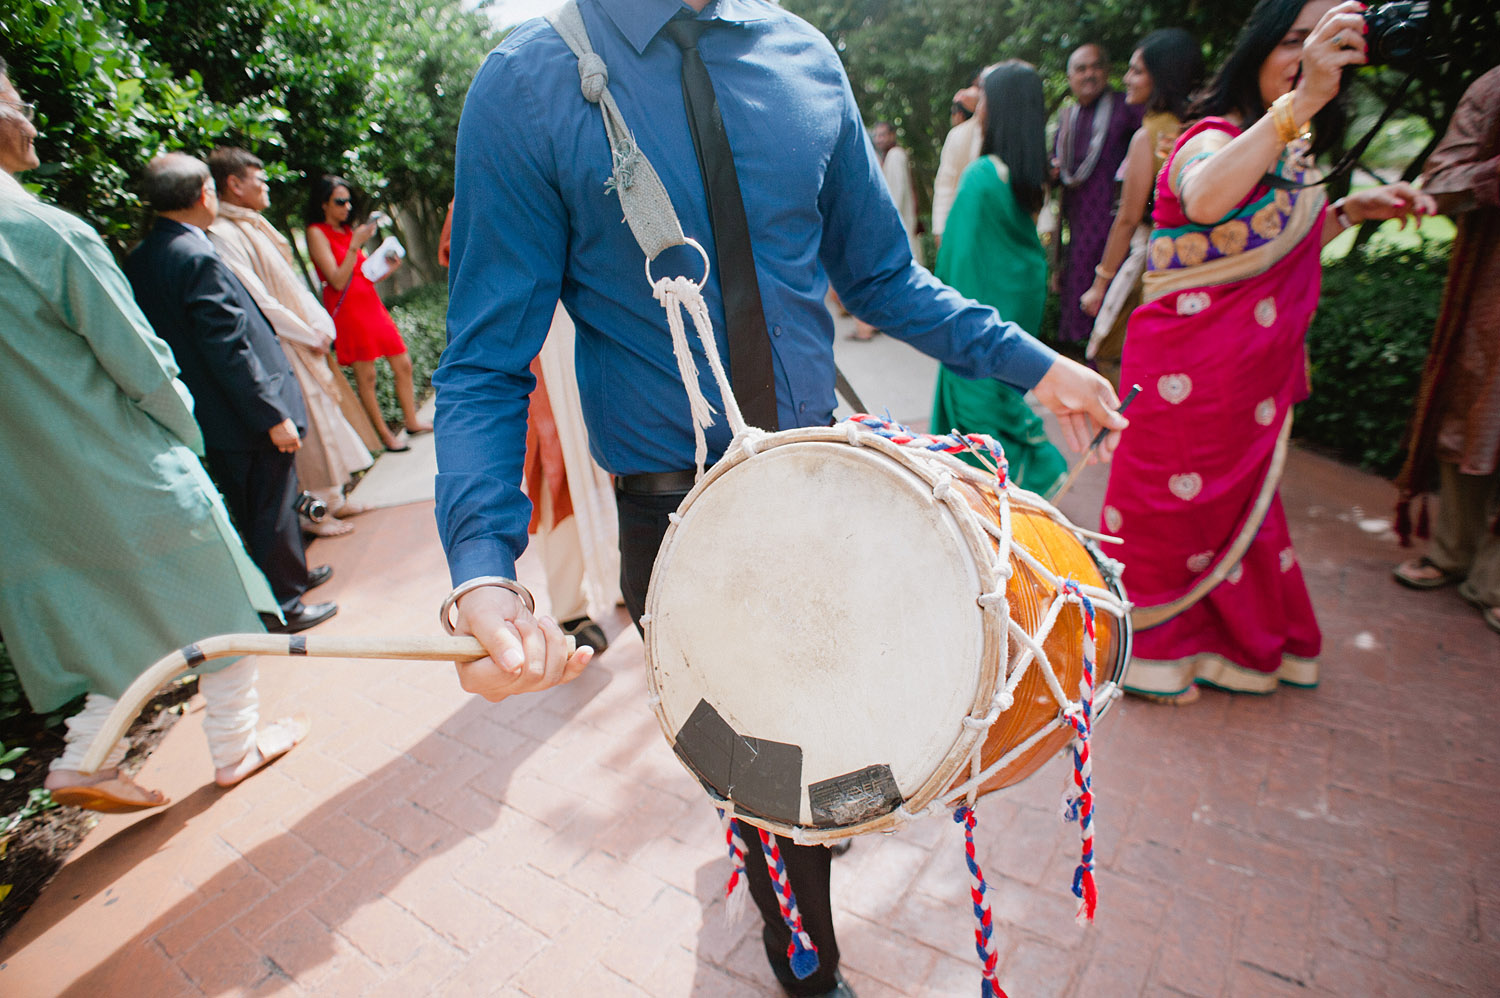 drummer at this hindu wedding ceremony in Palm Coast Florida where Destination wedding photographer Lexia Frank, a top indian wedding photographer, photographs this luxury indian wedding on film - preferring the soft skin tones and vibrant colors of film for indian weddings